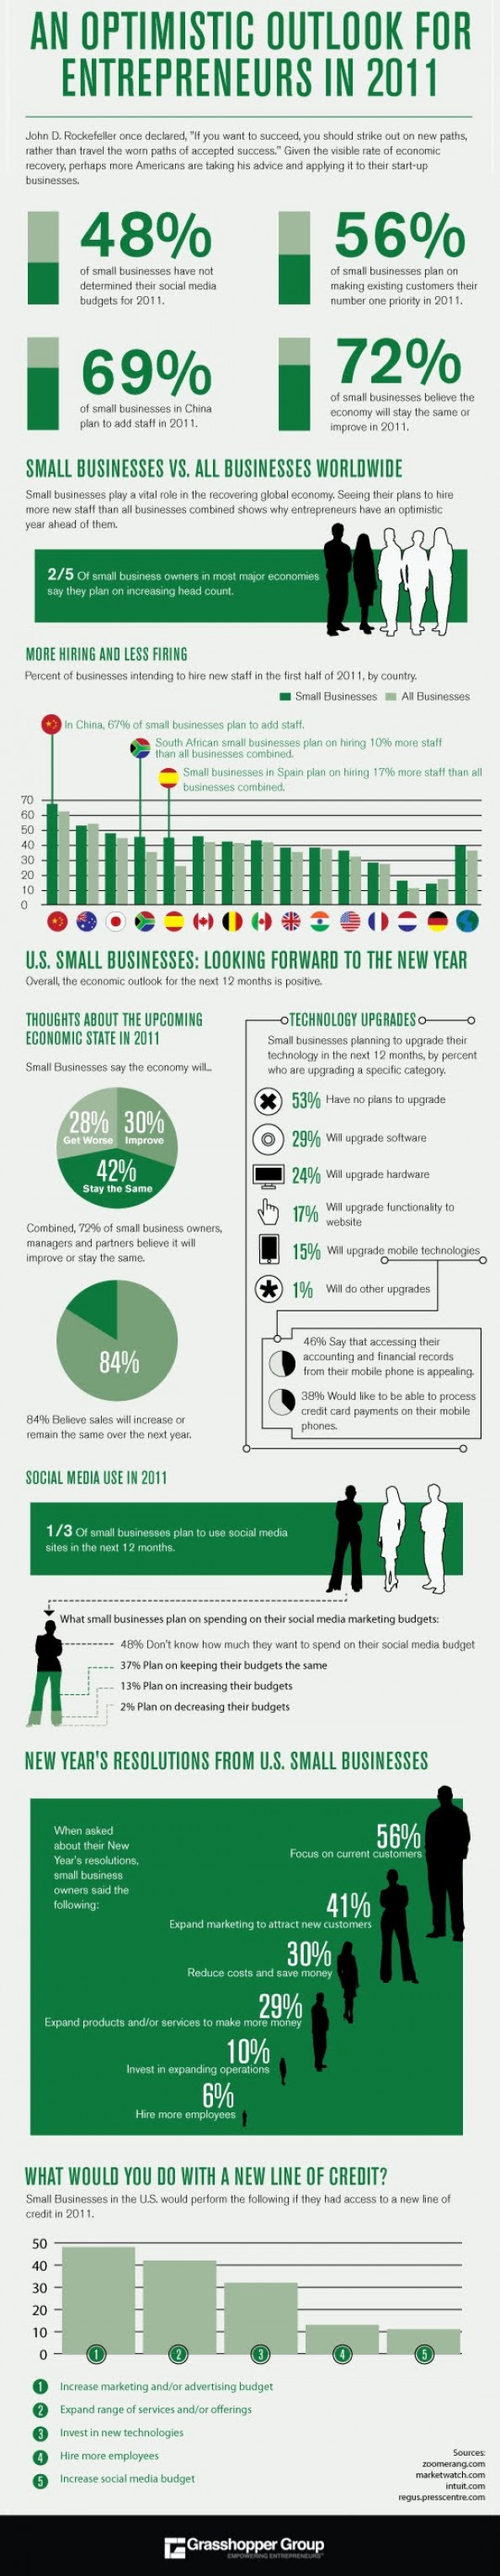 Small Business Owners Outlook for 2011 Infographic